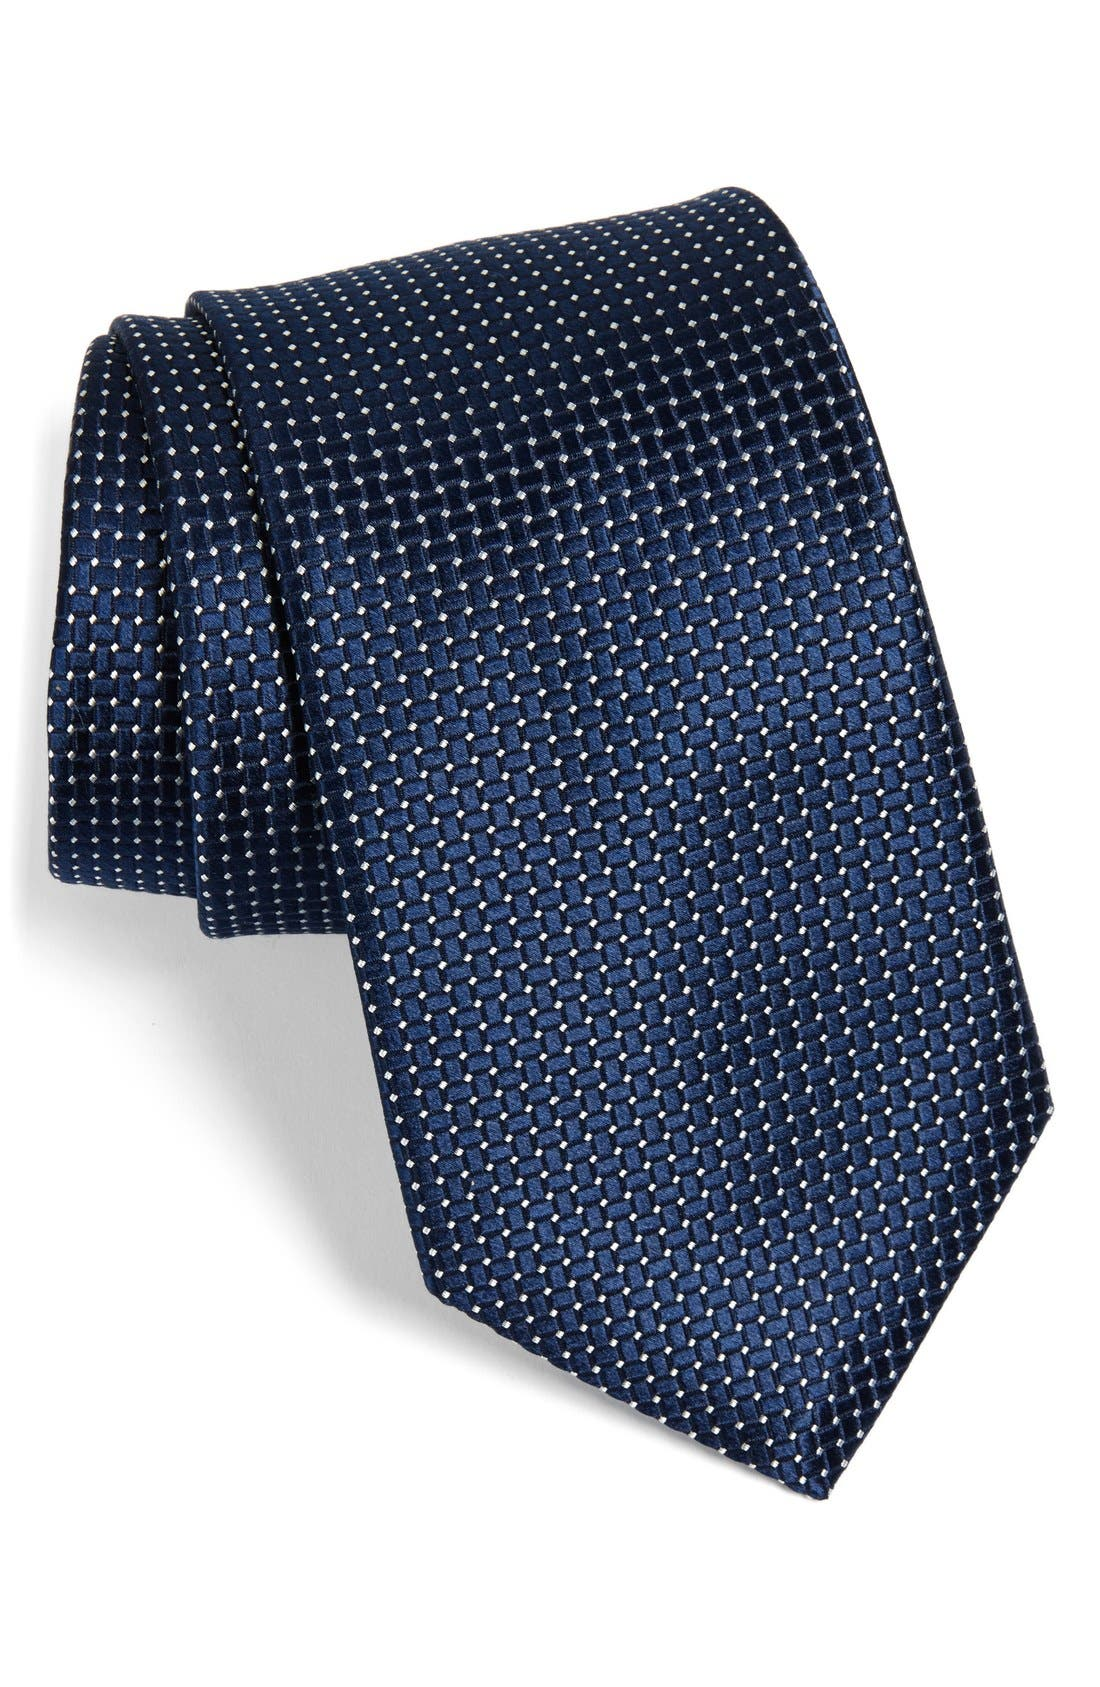 Alternate Image 1 Selected - Nordstrom Men's Shop 'Small Basket Weave Neat' Woven Silk Tie